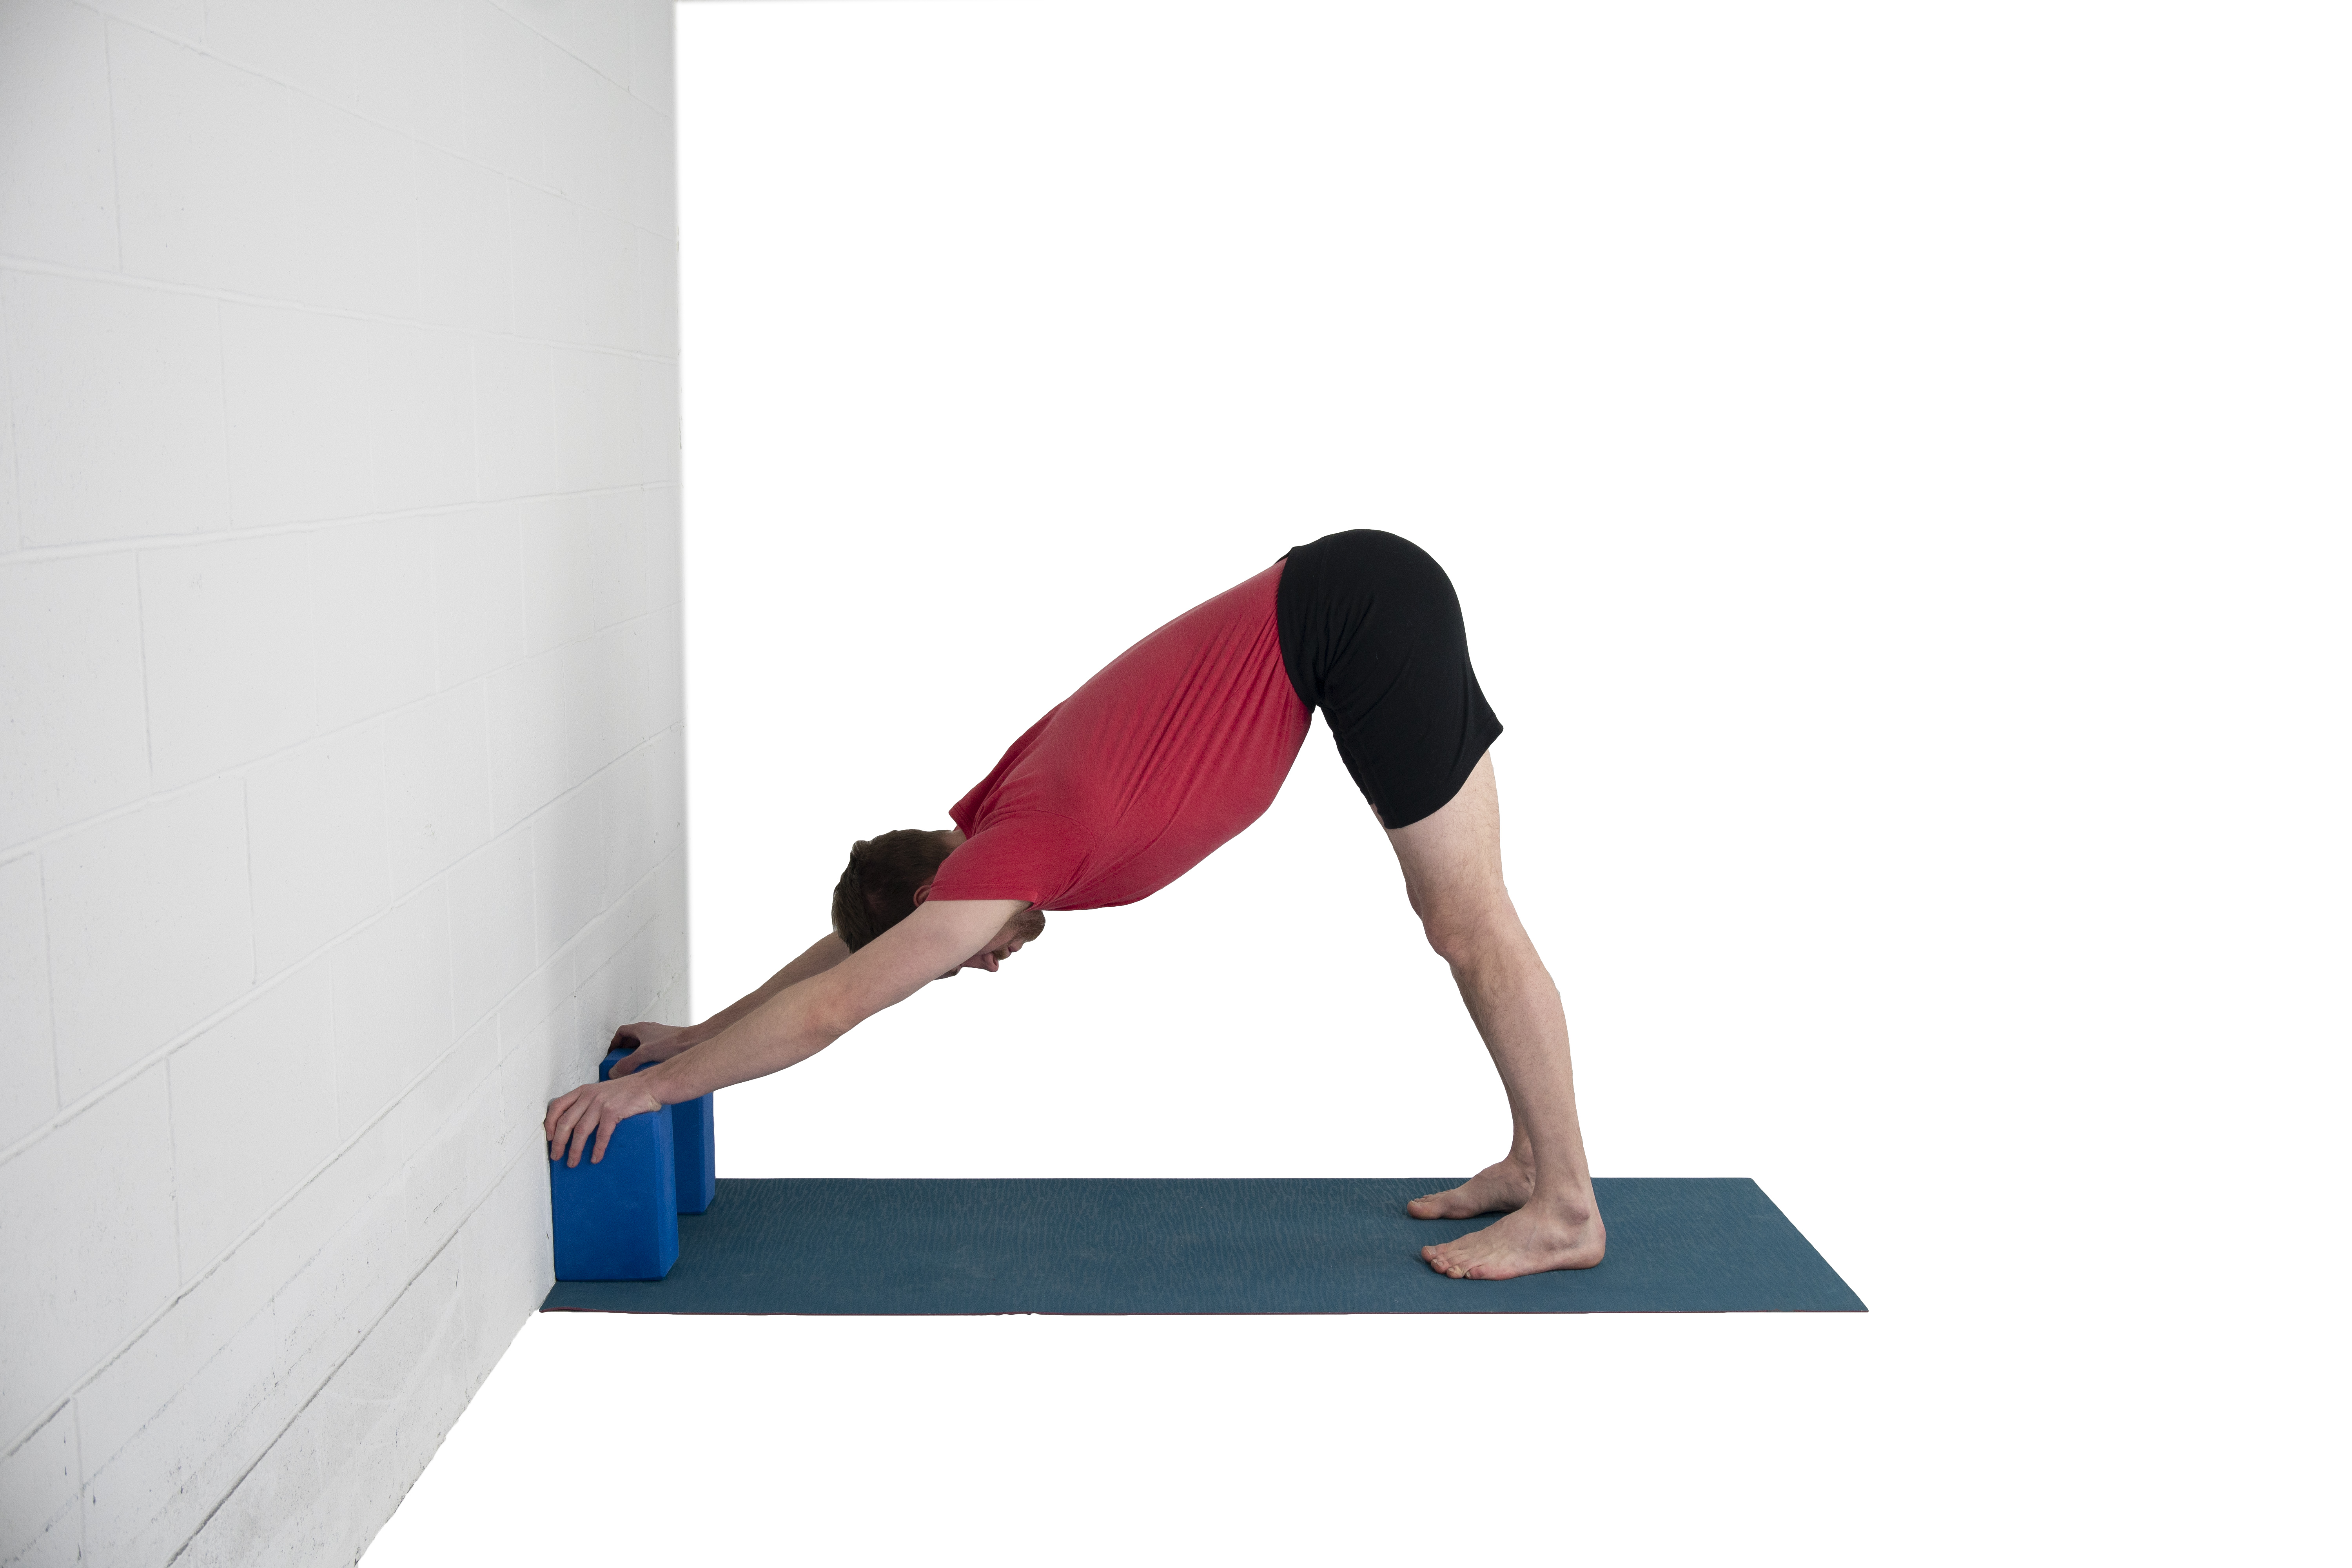 Adho Mukha Svanasana, downward facing dog, inversion, difficult pose, variation with blocks, learn about students in this pose